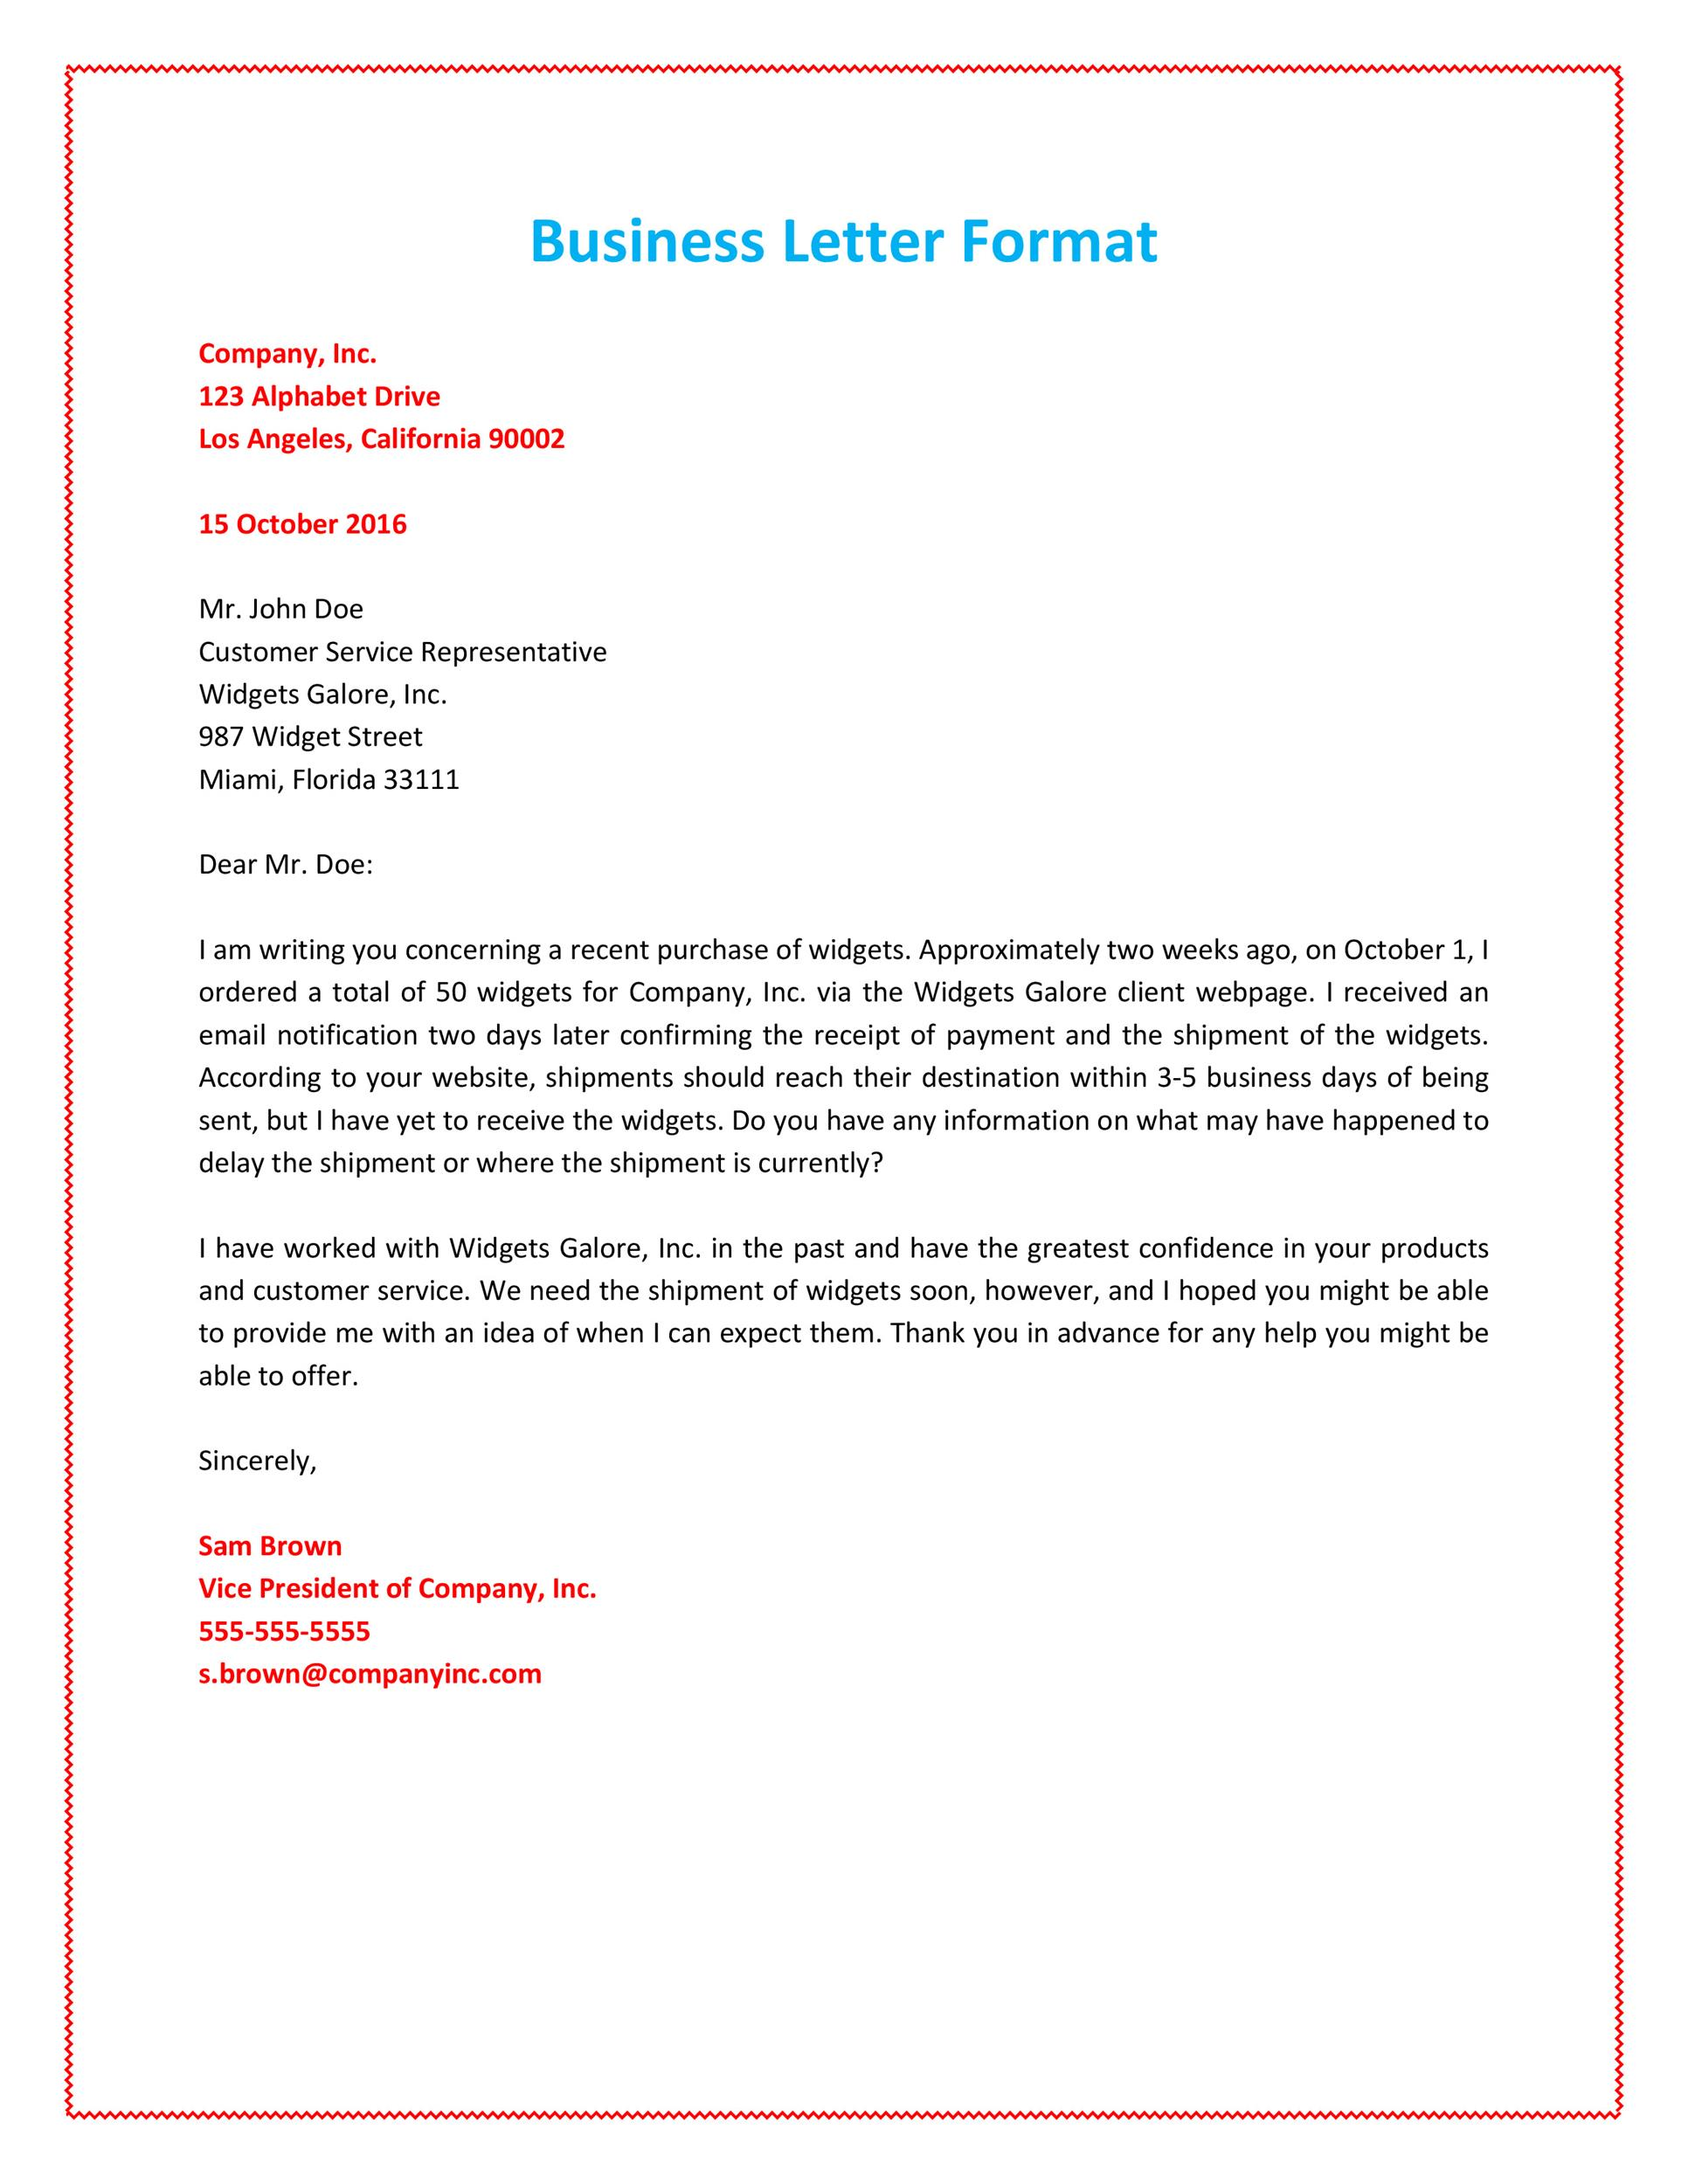 business letter example format